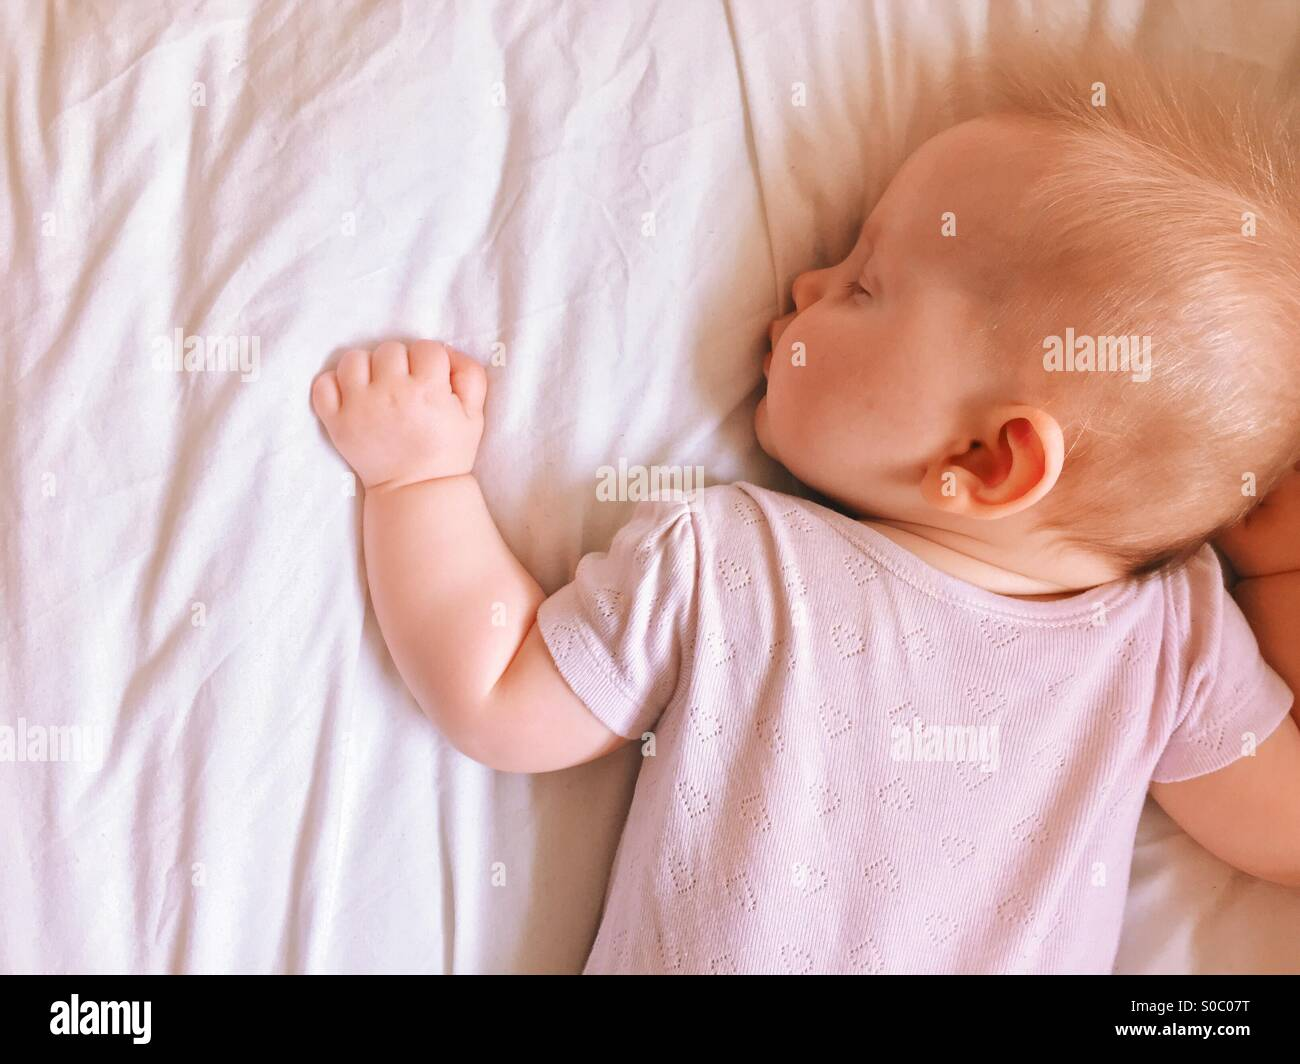 Sleeping baby - Stock Image